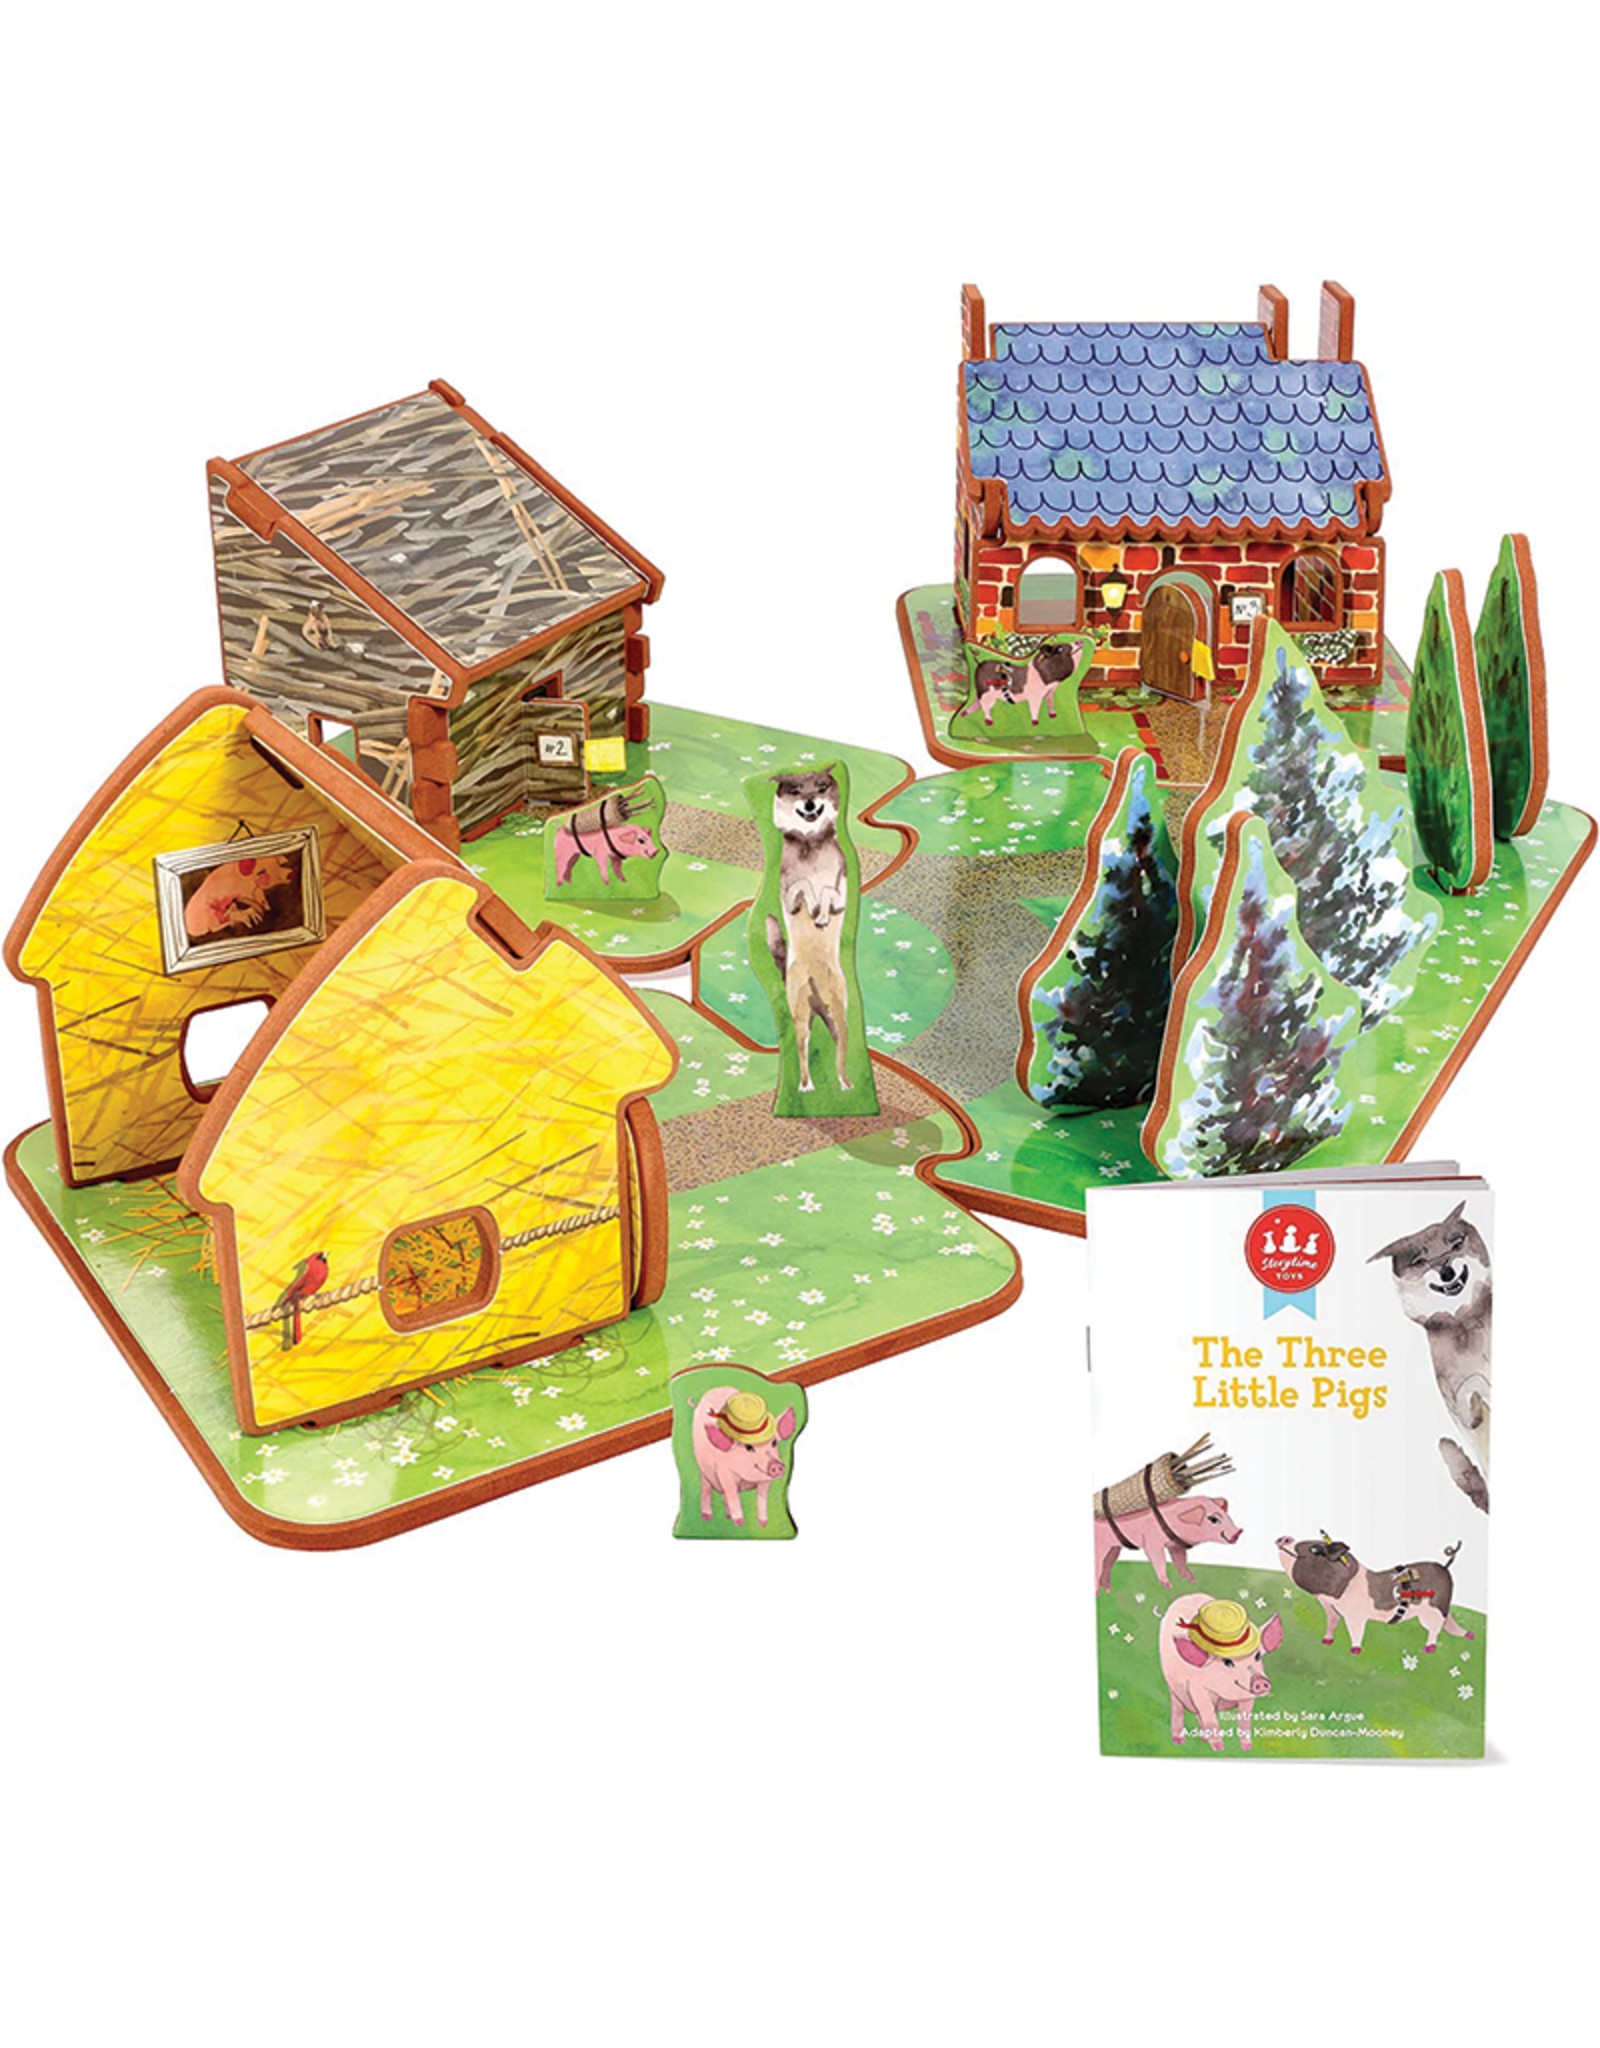 Storytime Toys Storytime Toys The Thee Pigs Play Set